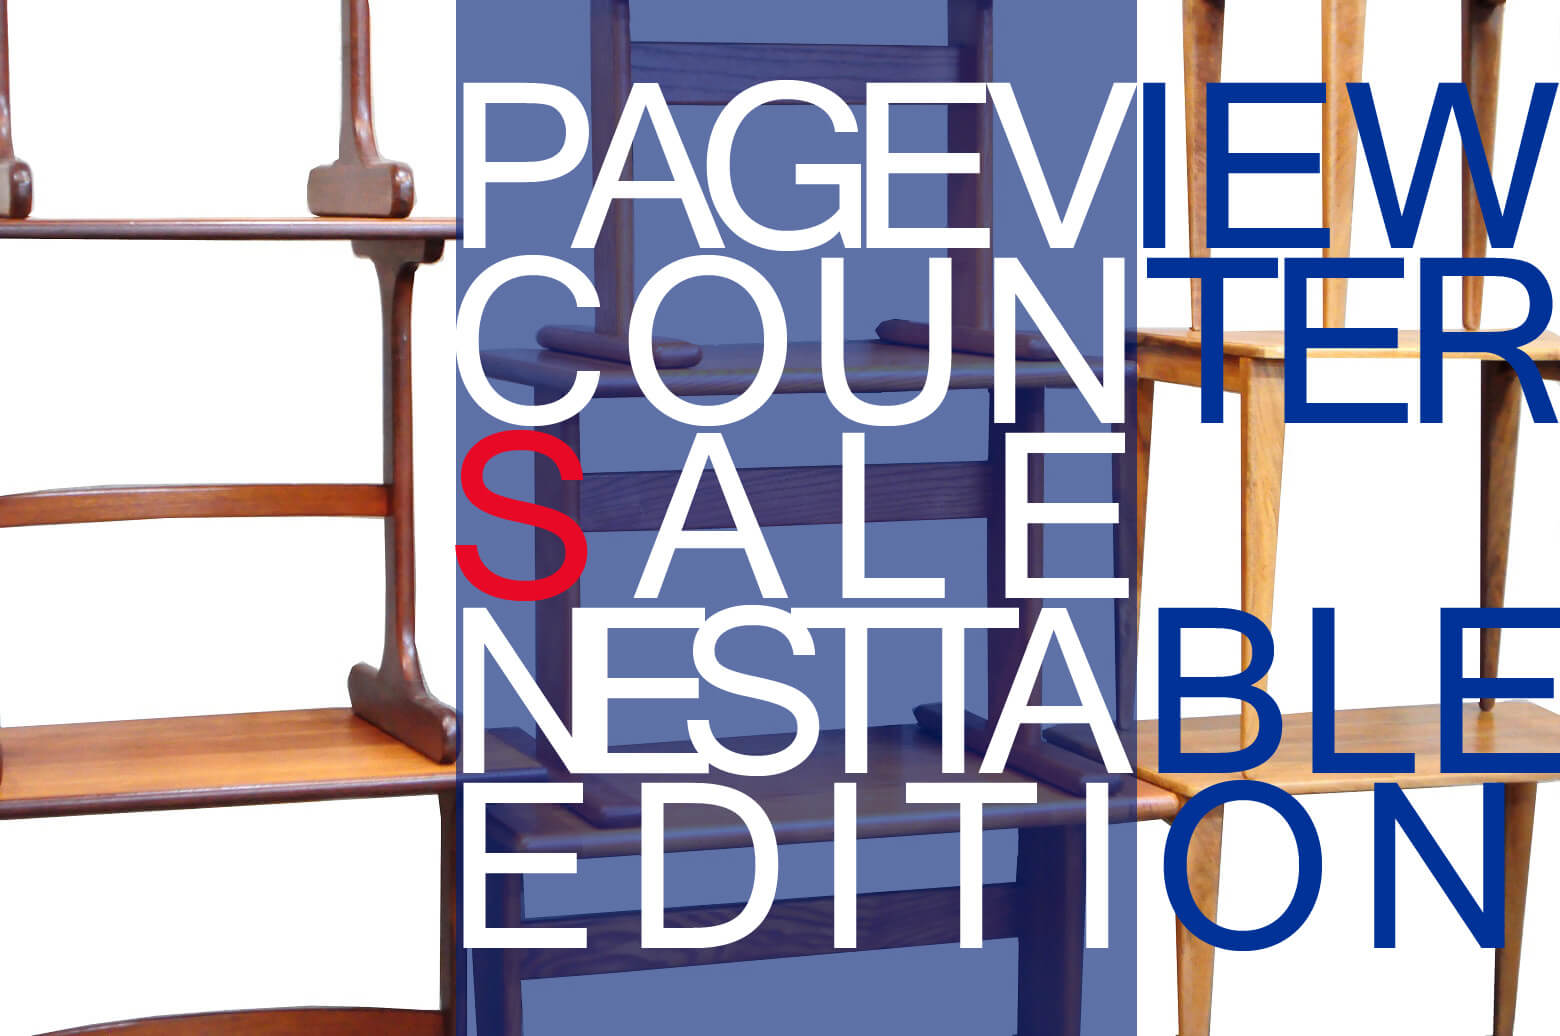 PAGE VIEW COUNTER SALE NEST TABLE EDITION UNTIL 5/23